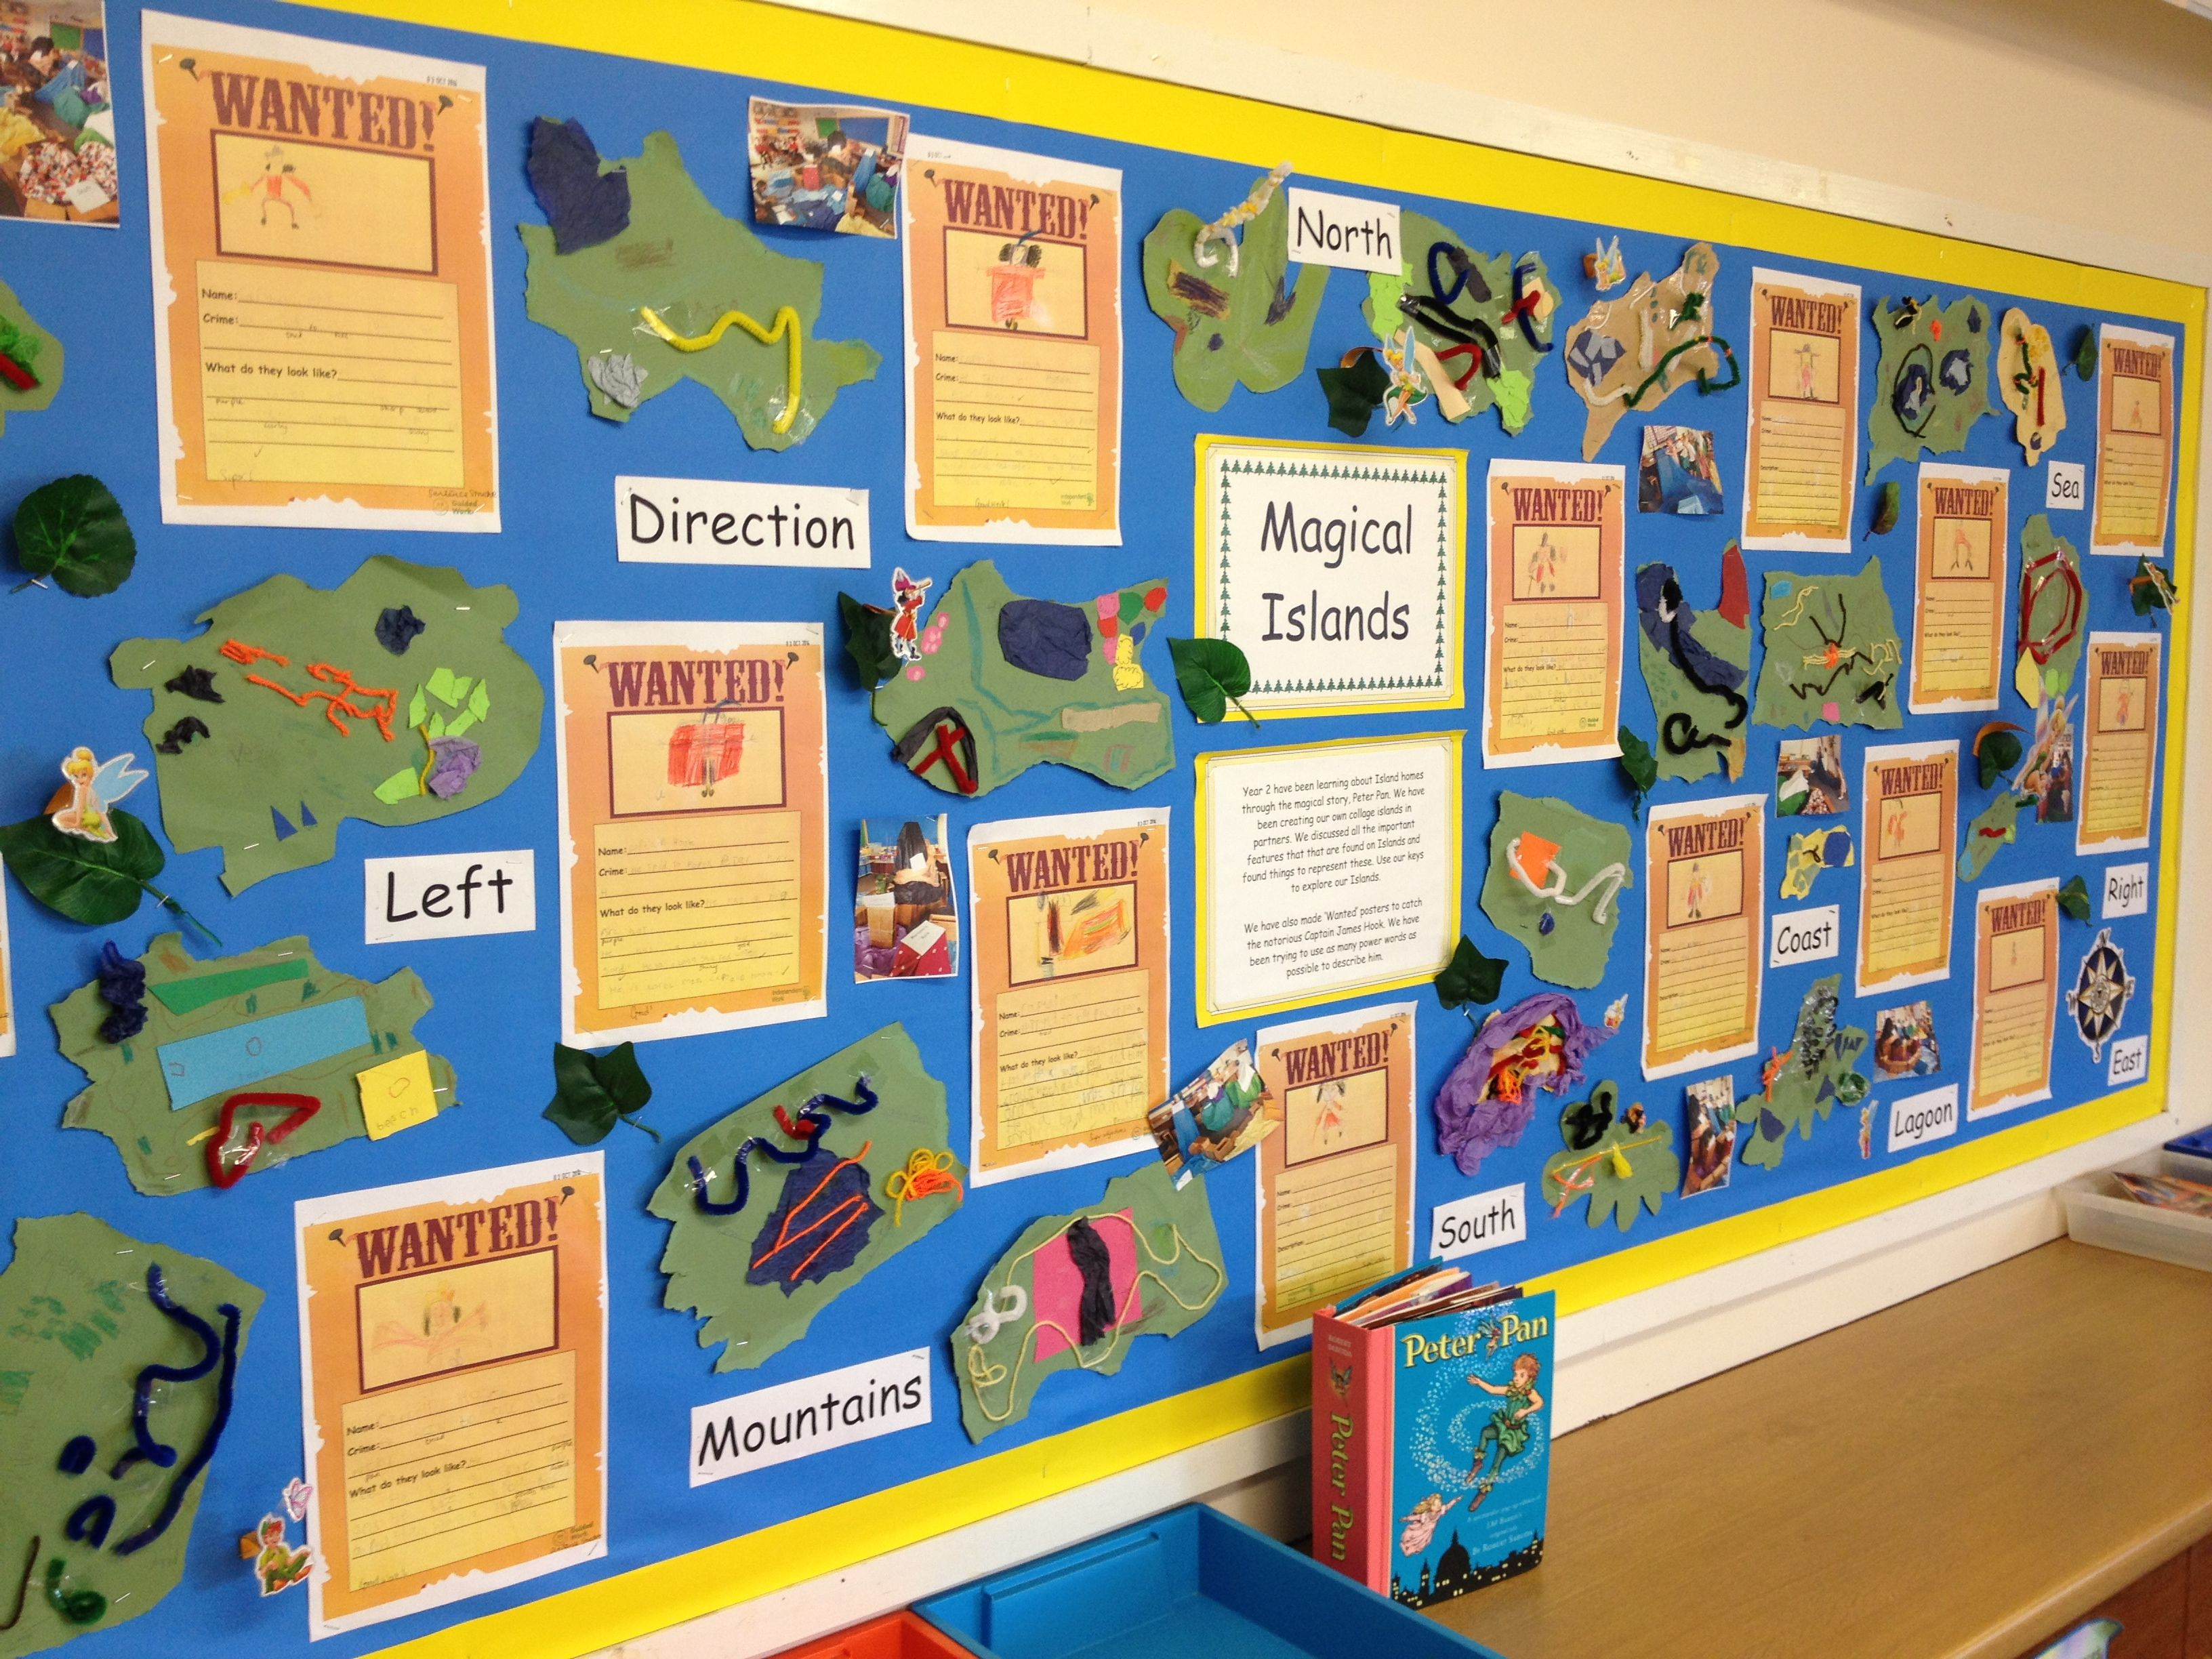 Classroom Hook Ideas : Peter pan display map work and wanted posters for